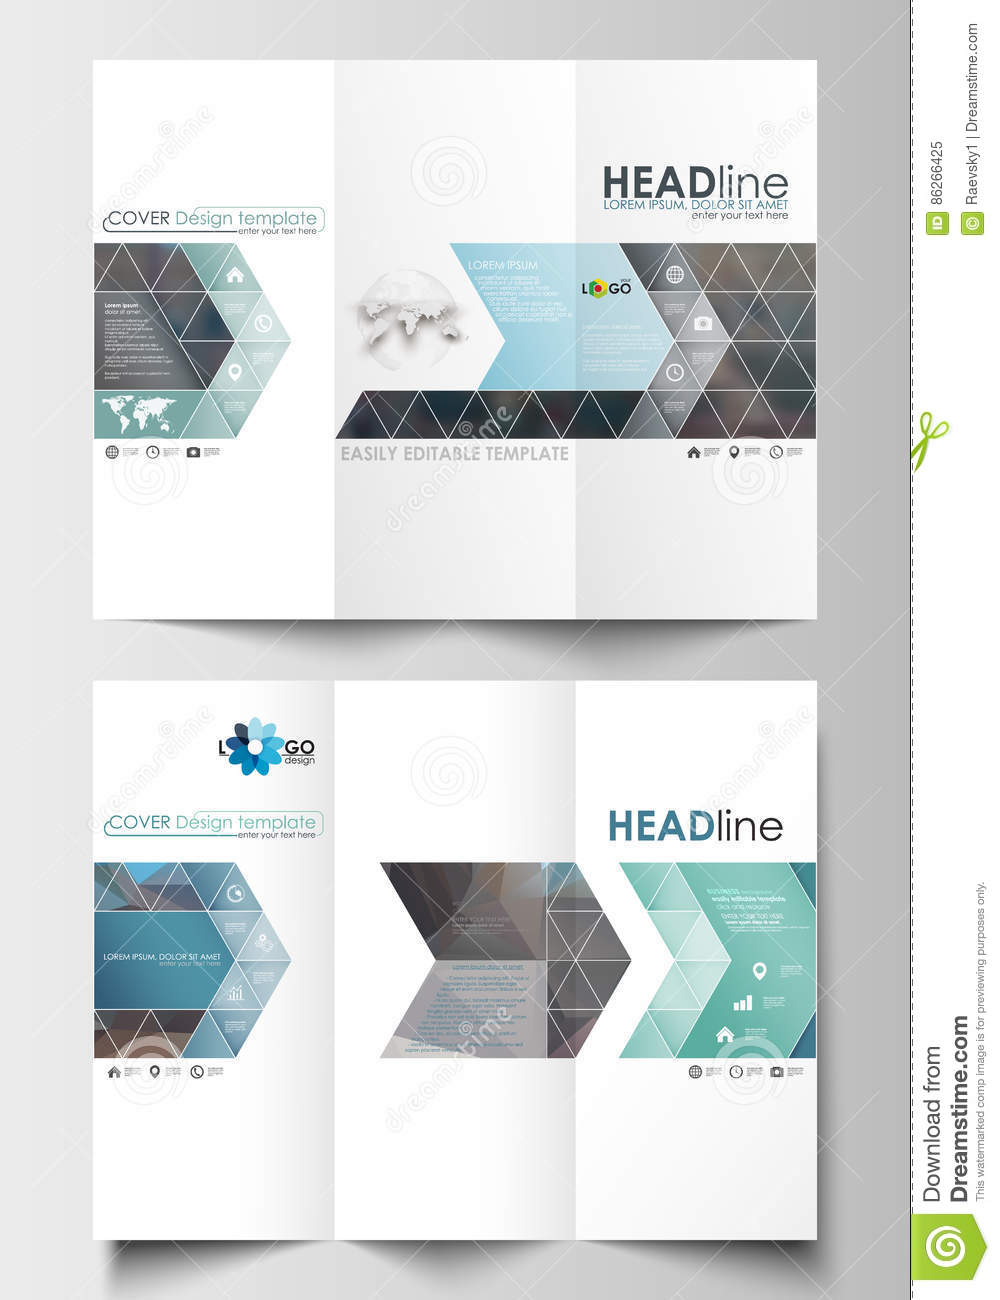 tri fold brochure templates on both sides easy editable layout in